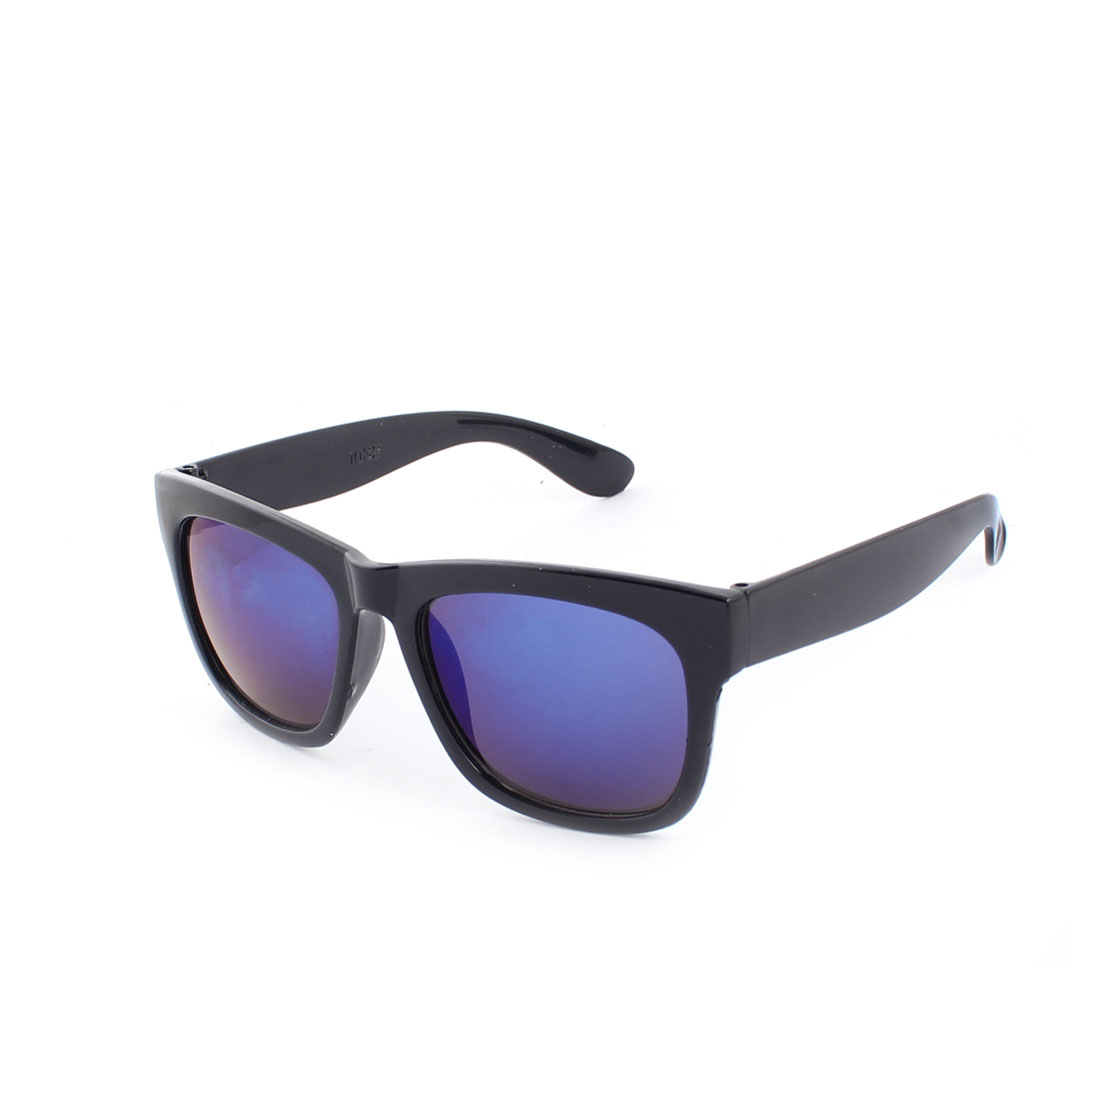 Beach Traveling Plastic Frame Full Rim Blue Lens Sunglasses Black